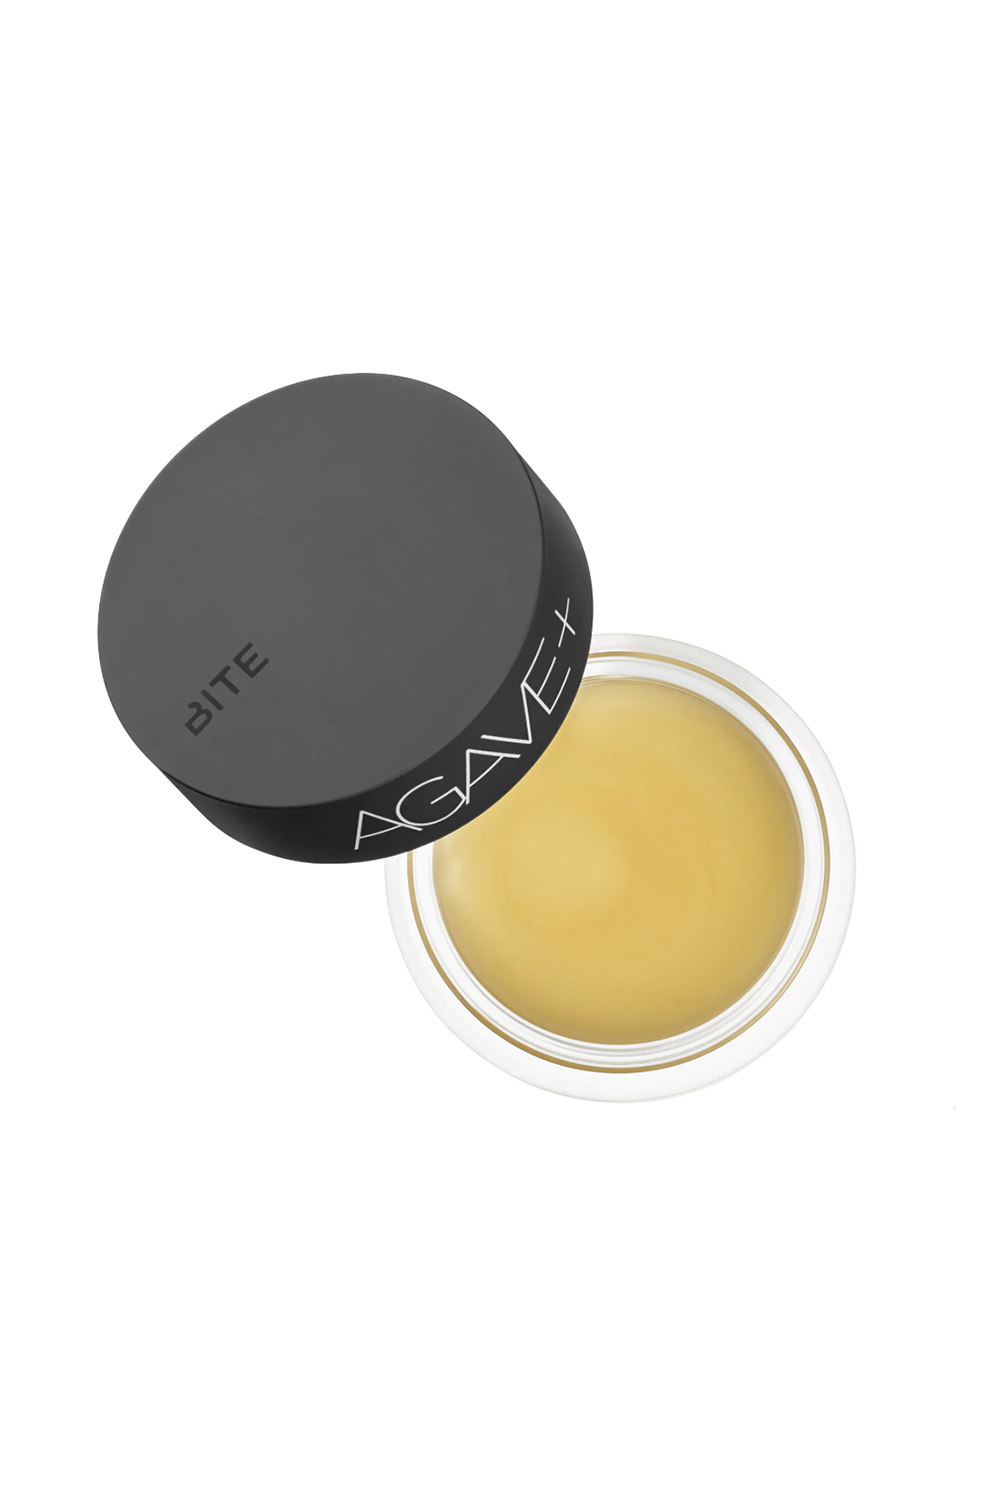 This Overnight Lip Mask Bite Beauty Agave+ Nighttime Lip Therapy, $22 SHOP IT Praise be: You can kiss the days of waking up with chapped lips buh-bye with this lip sleeping mask. Its balm-to-oil formula nourishes your lips with botanical oils and antioxidants overnight that lock in moisture that lingers for hours on end.